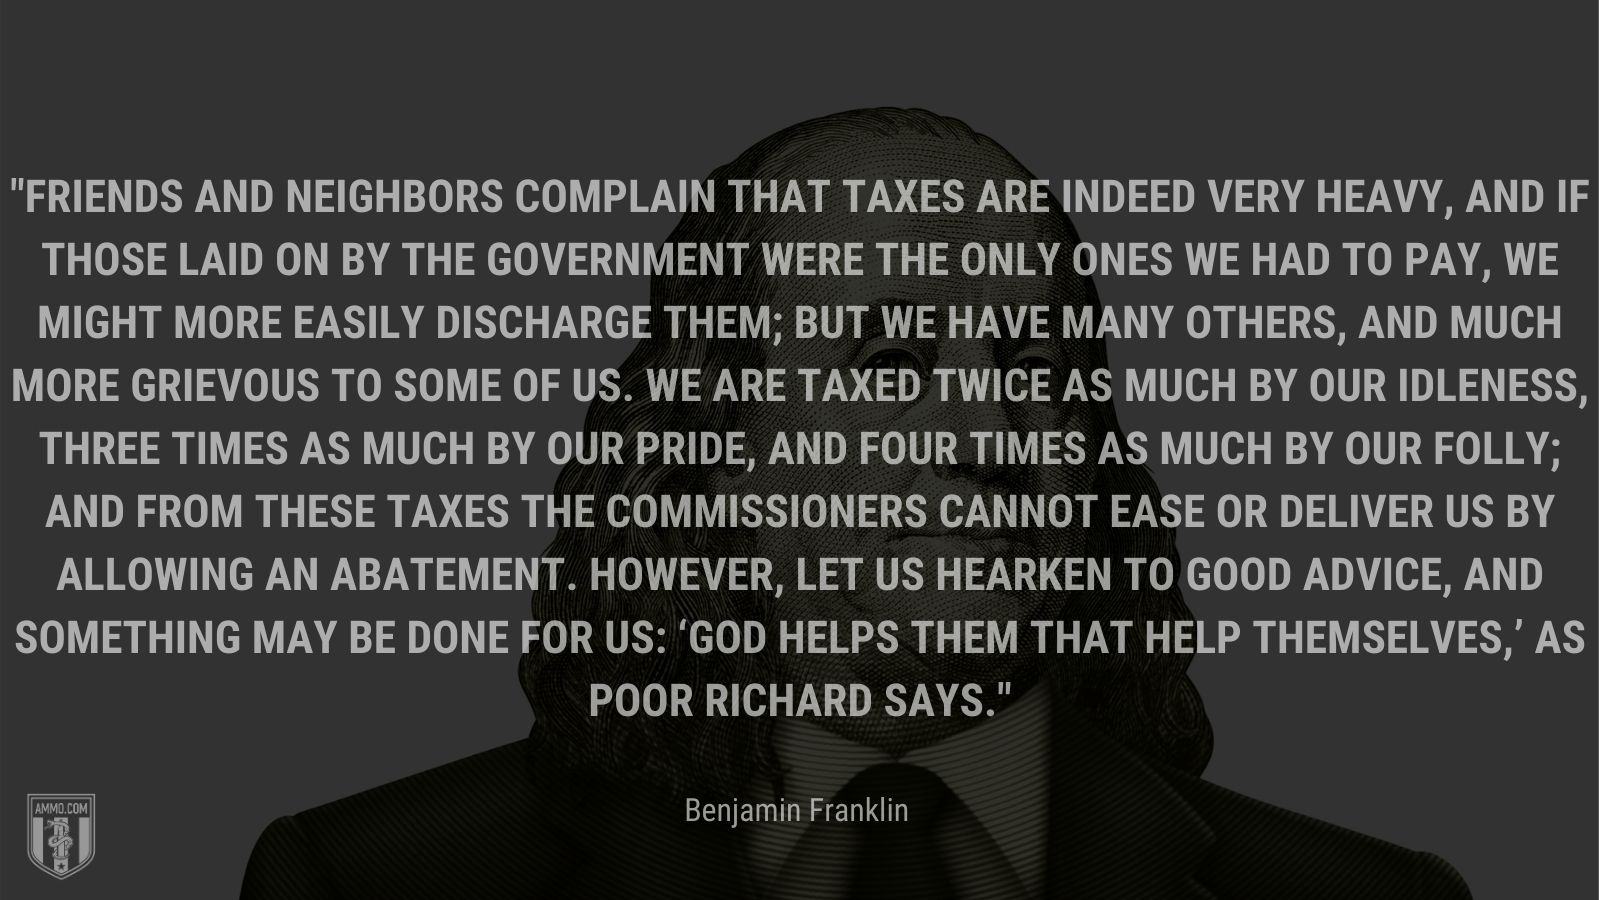 """""""Friends and neighbors complain that taxes are indeed very heavy, and if those laid on by the government were the only ones we had to pay, we might more easily discharge them; but we have many others, and much more grievous to some of us. We are taxed twice as much by our idleness, three times as much by our pride, and four times as much by our folly; and from these taxes the commissioners cannot ease or deliver us by allowing an abatement. However, let us hearken to good advice, and something may be done for us: 'God helps them that help themselves,' as Poor Richard says."""" - Benjamin Franklin"""